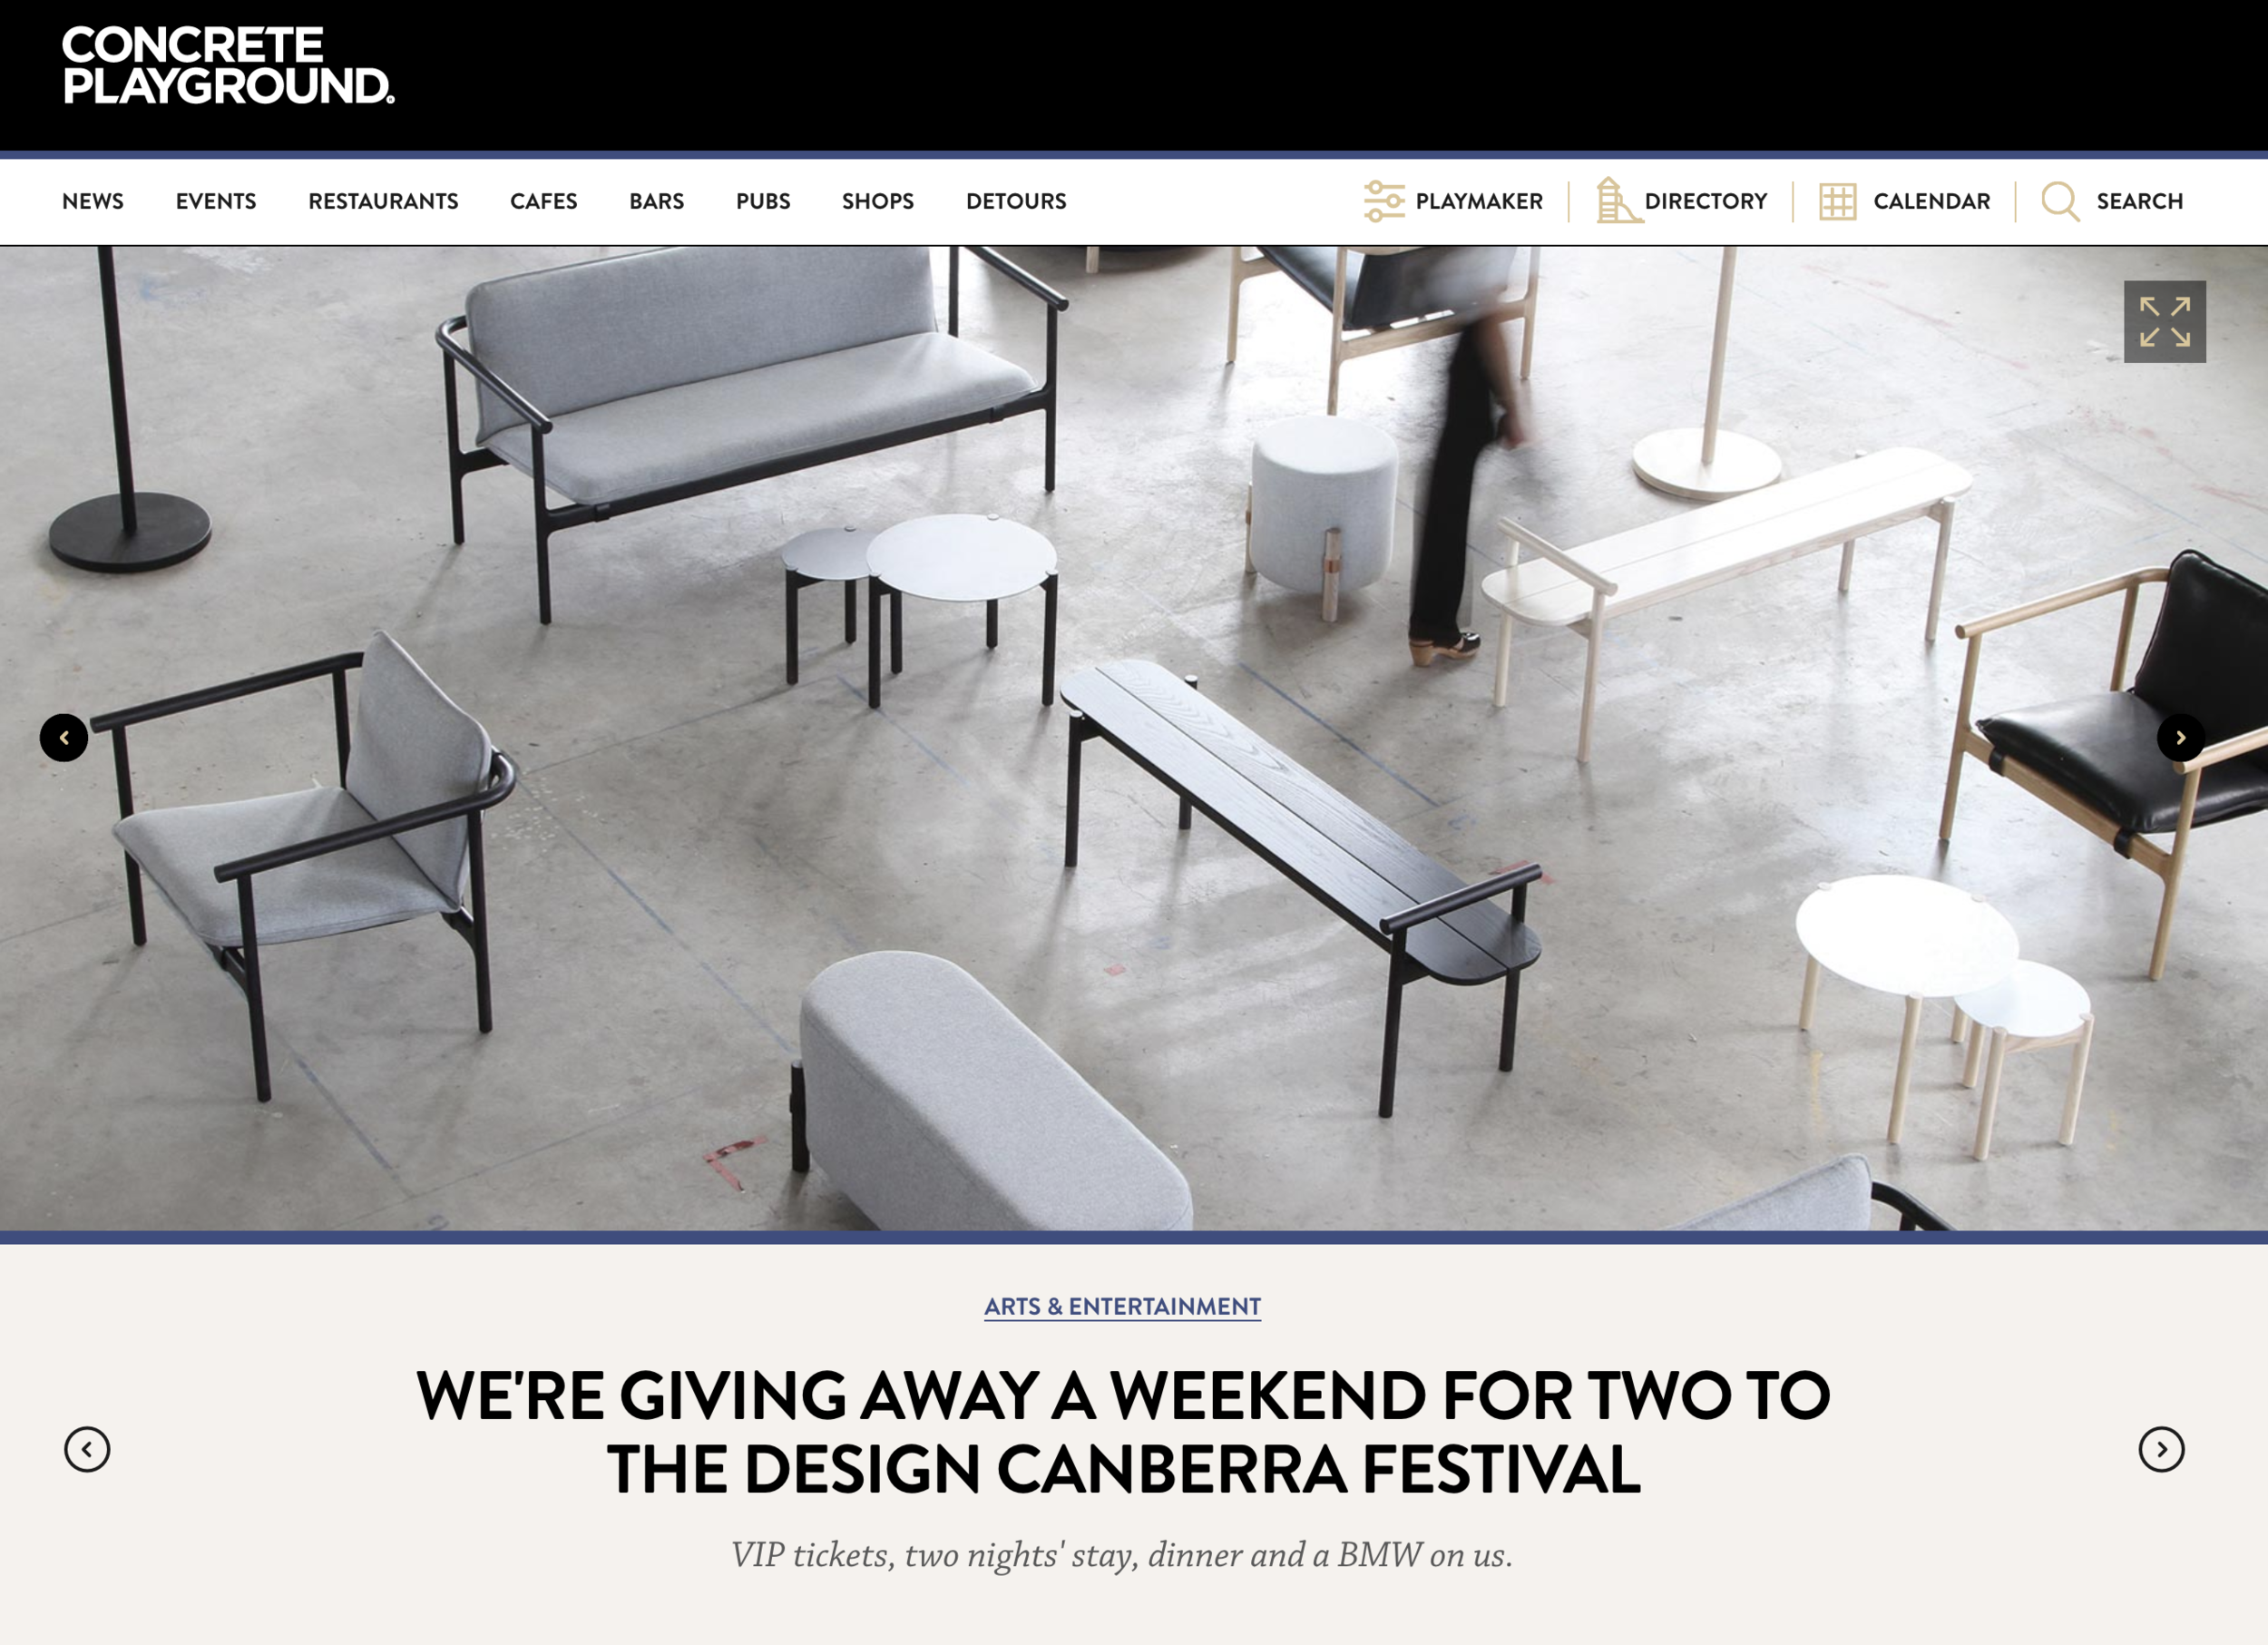 DESIGN CANBERRA - CONCRETE PLAYGROUND - COMPETITION -  6 OCTOBER, 20171.png